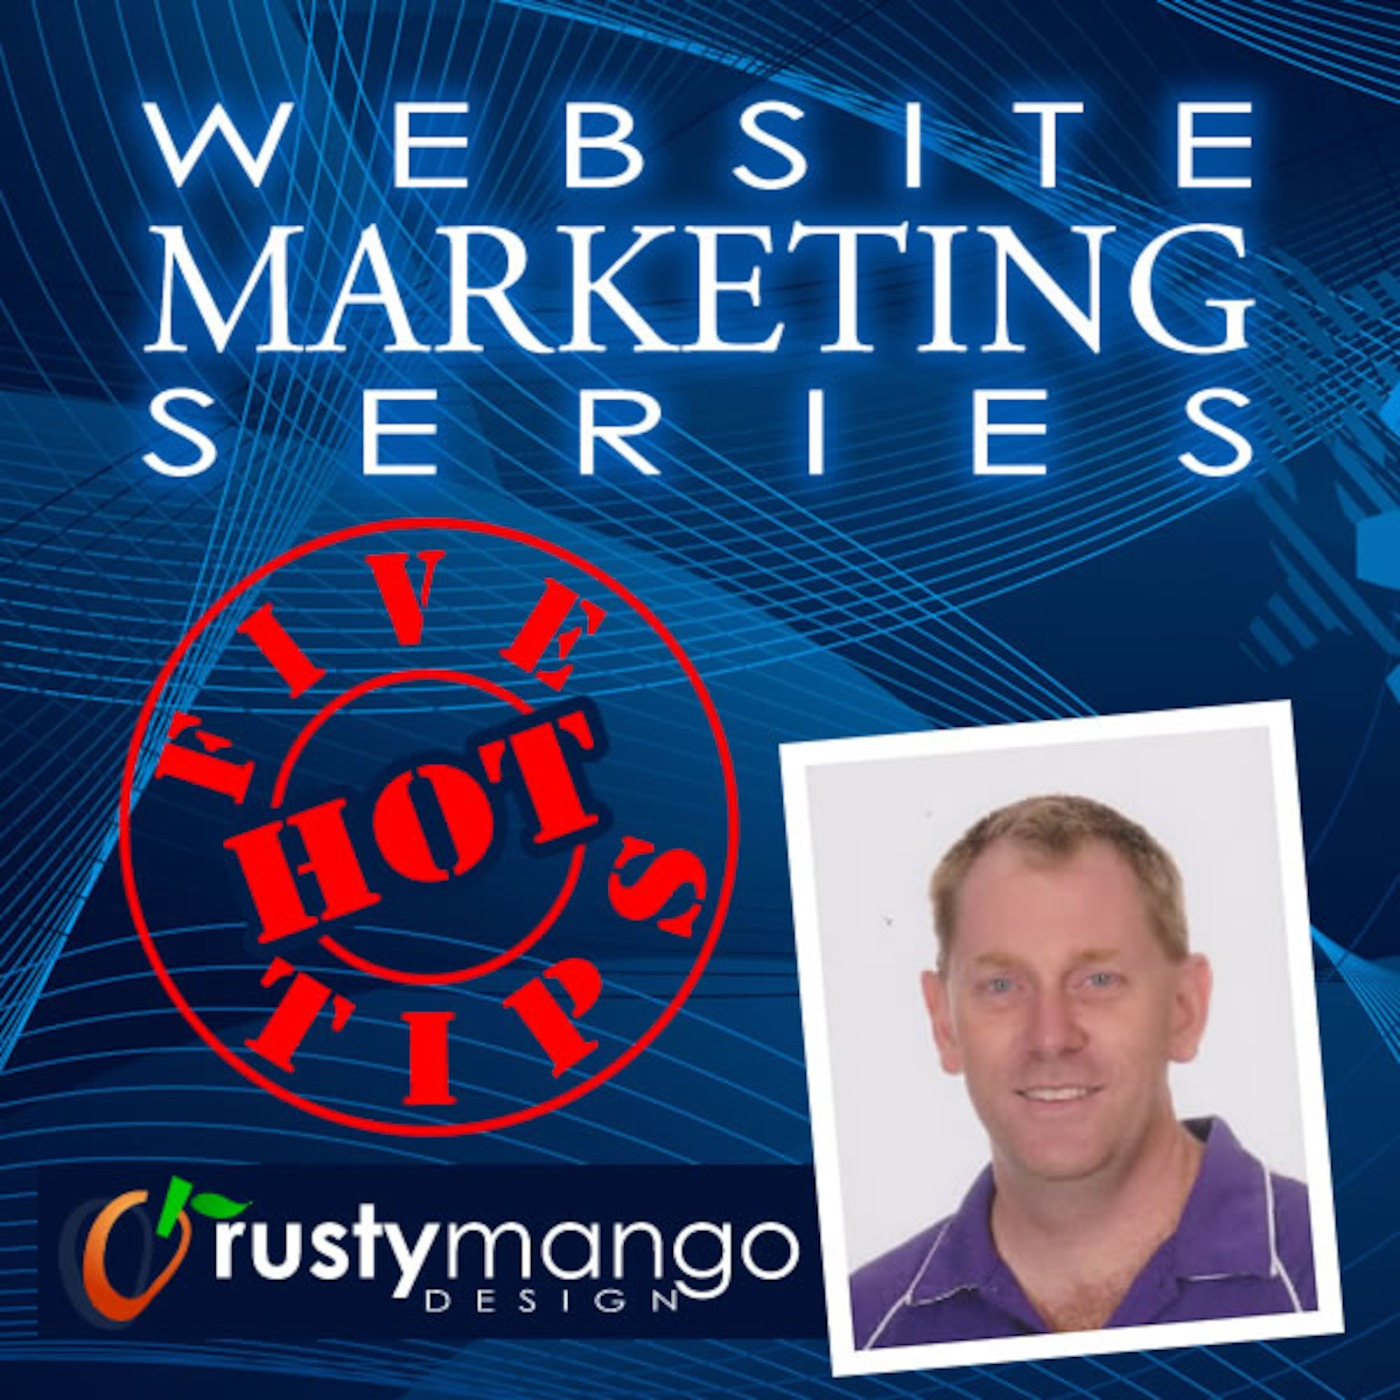 Website Marketing Series - Rusty Mango Design